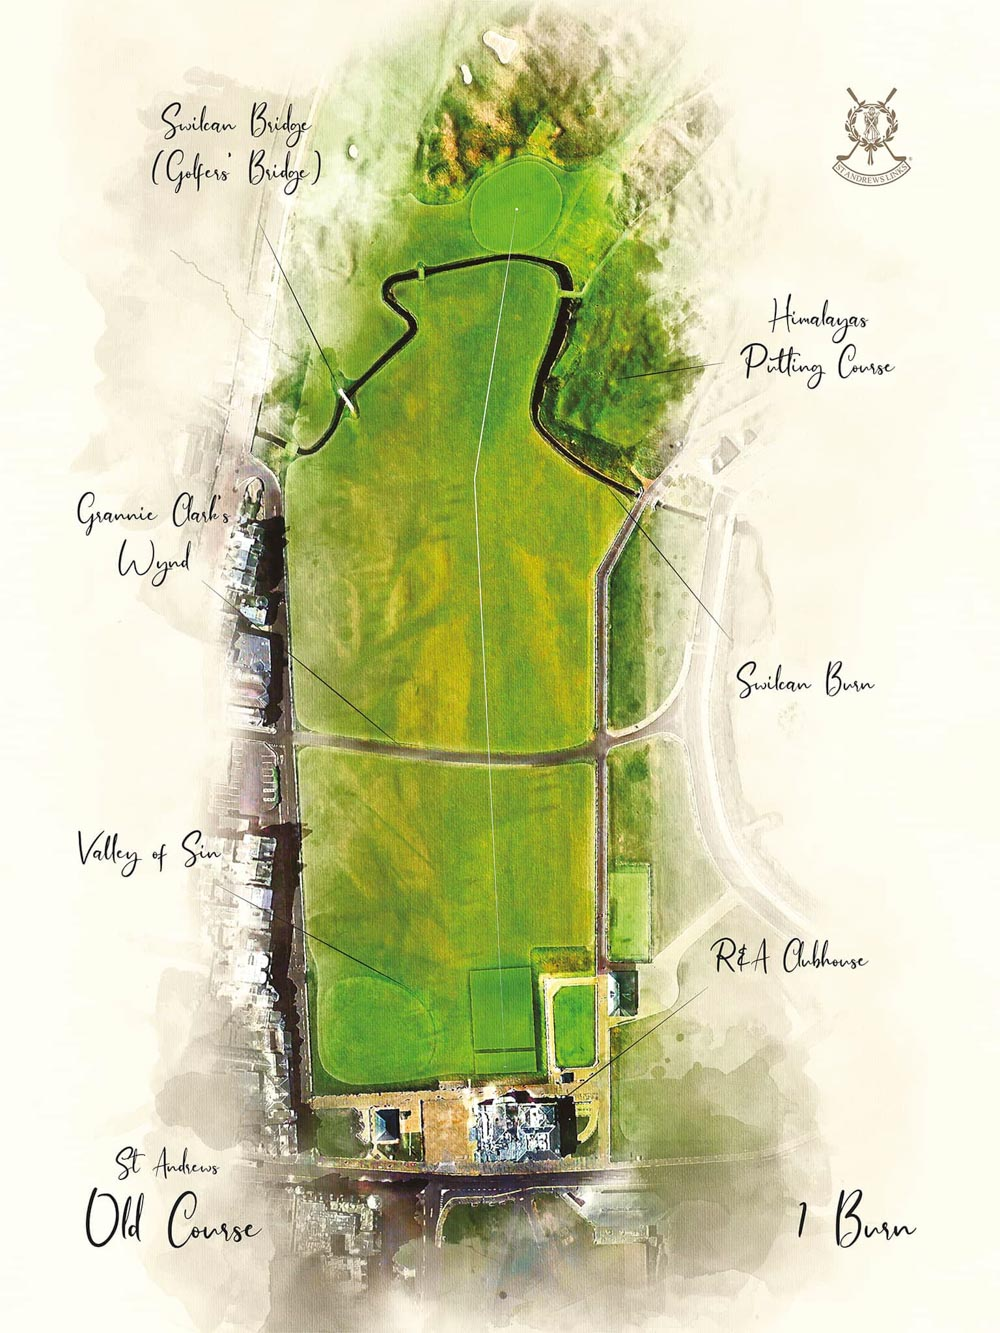 Hole 1 & Hole 18 at the Old Course St Andrews.